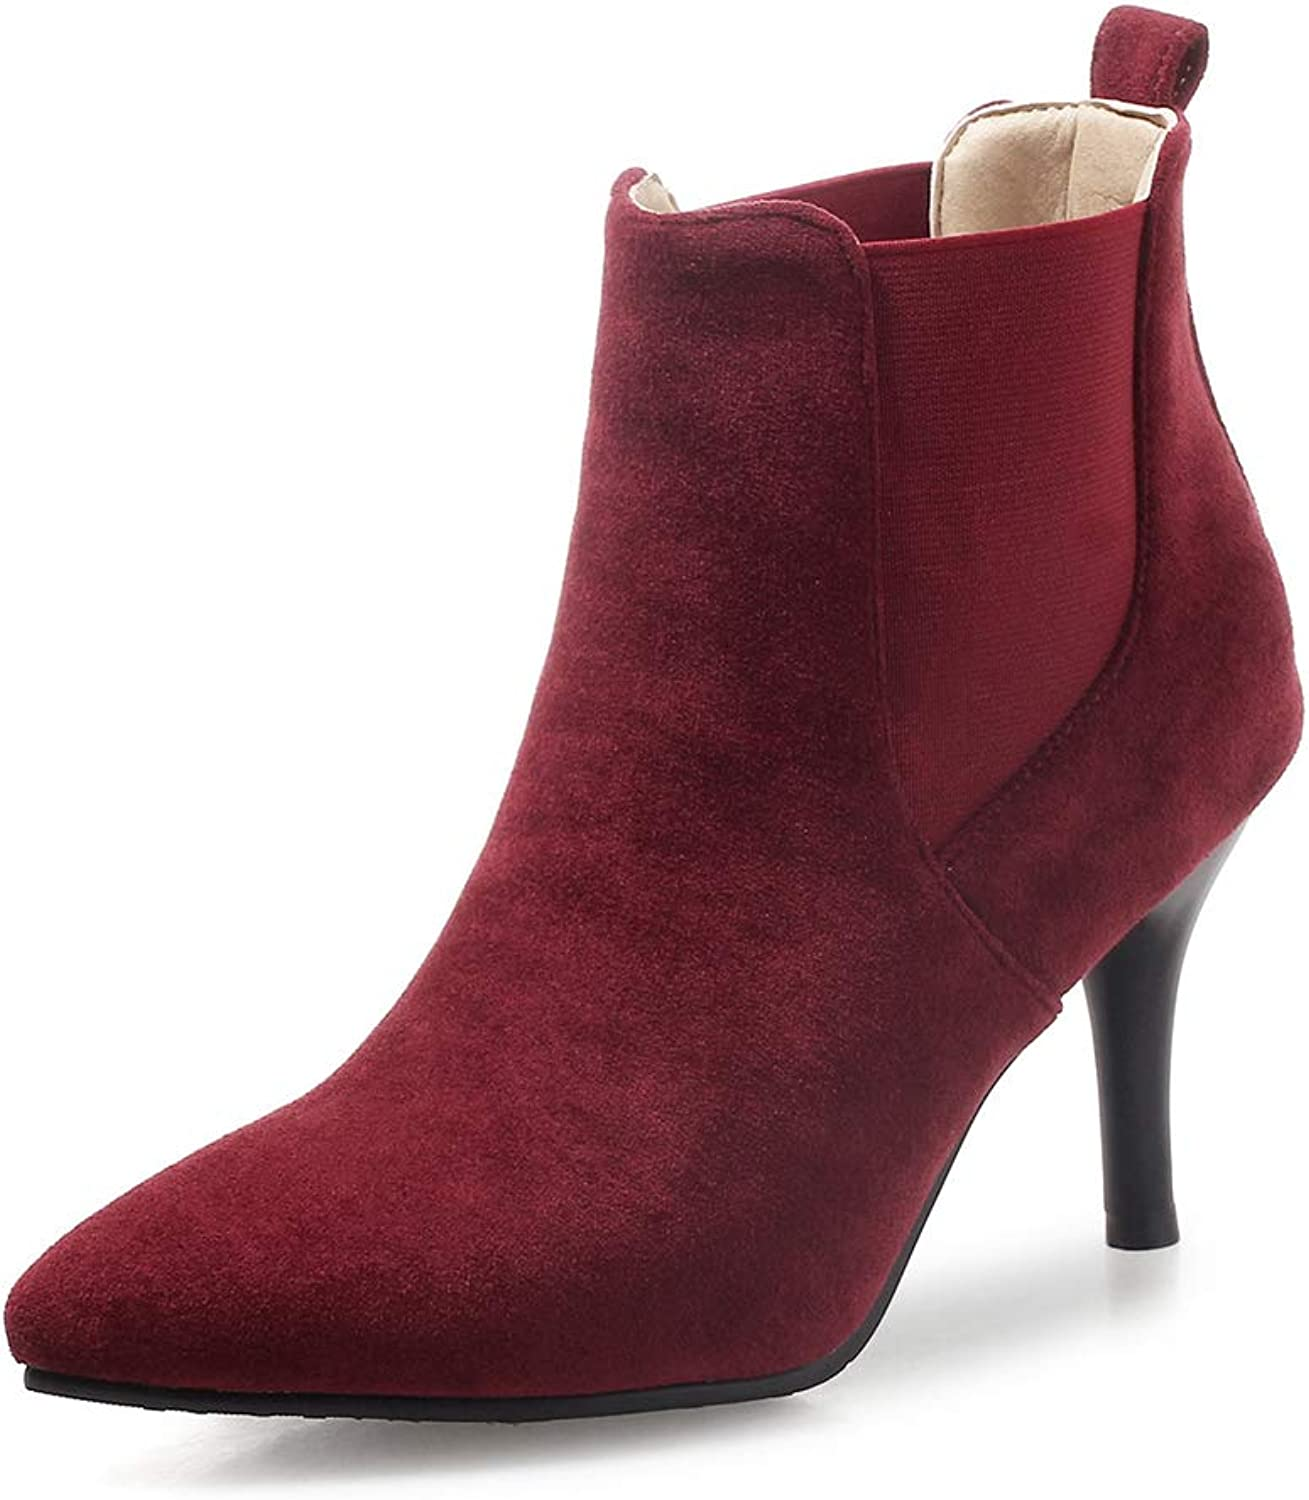 Btrada Women's Closed Pointed Toe Ankle Boots Soft Elastic Low-Cut Slip On Stiletto Booties Autumn Pumps